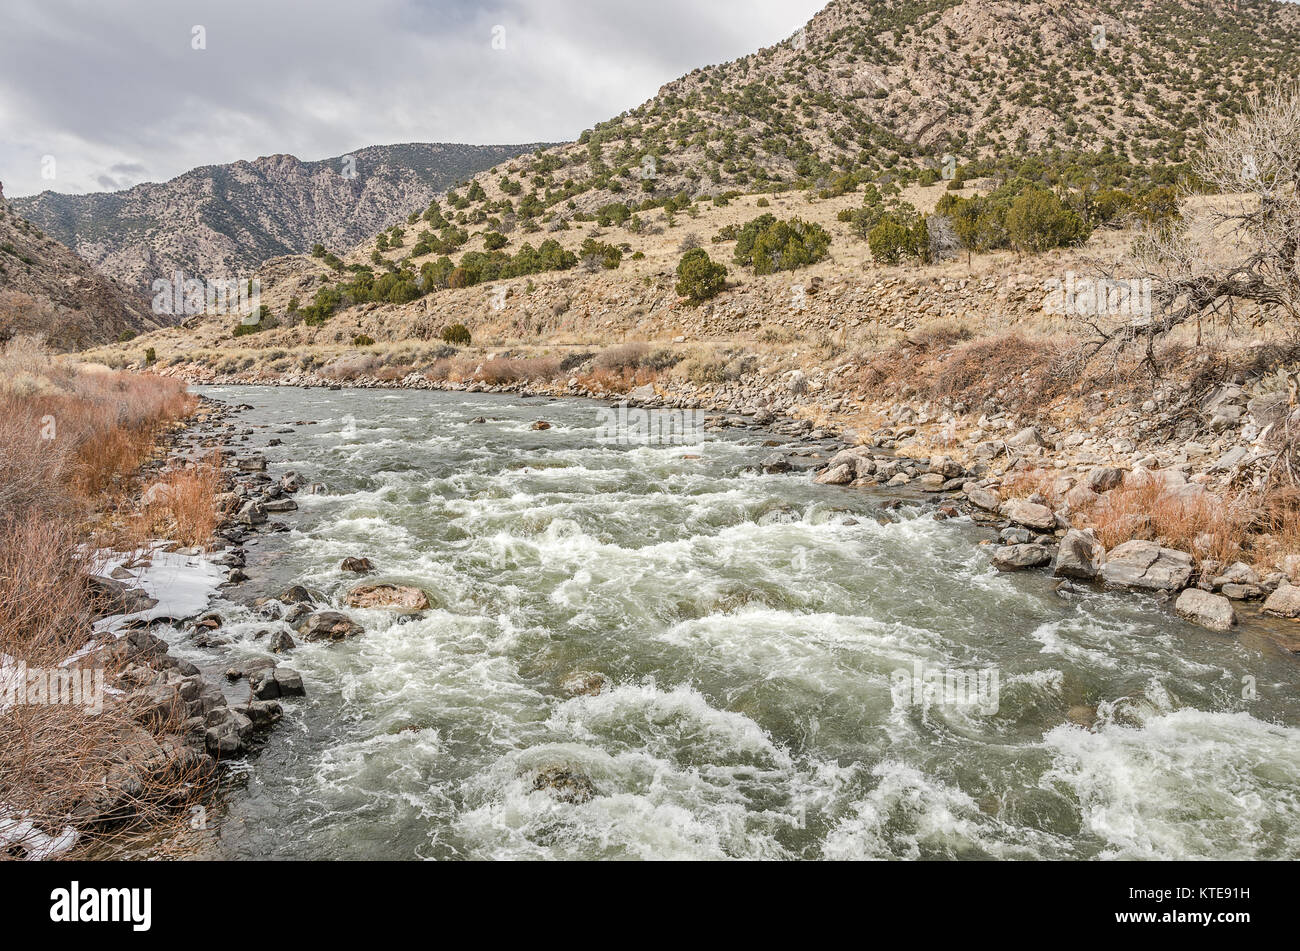 Arkansas River in Colorado running swiftly through the mountains on a winter day - Stock Image